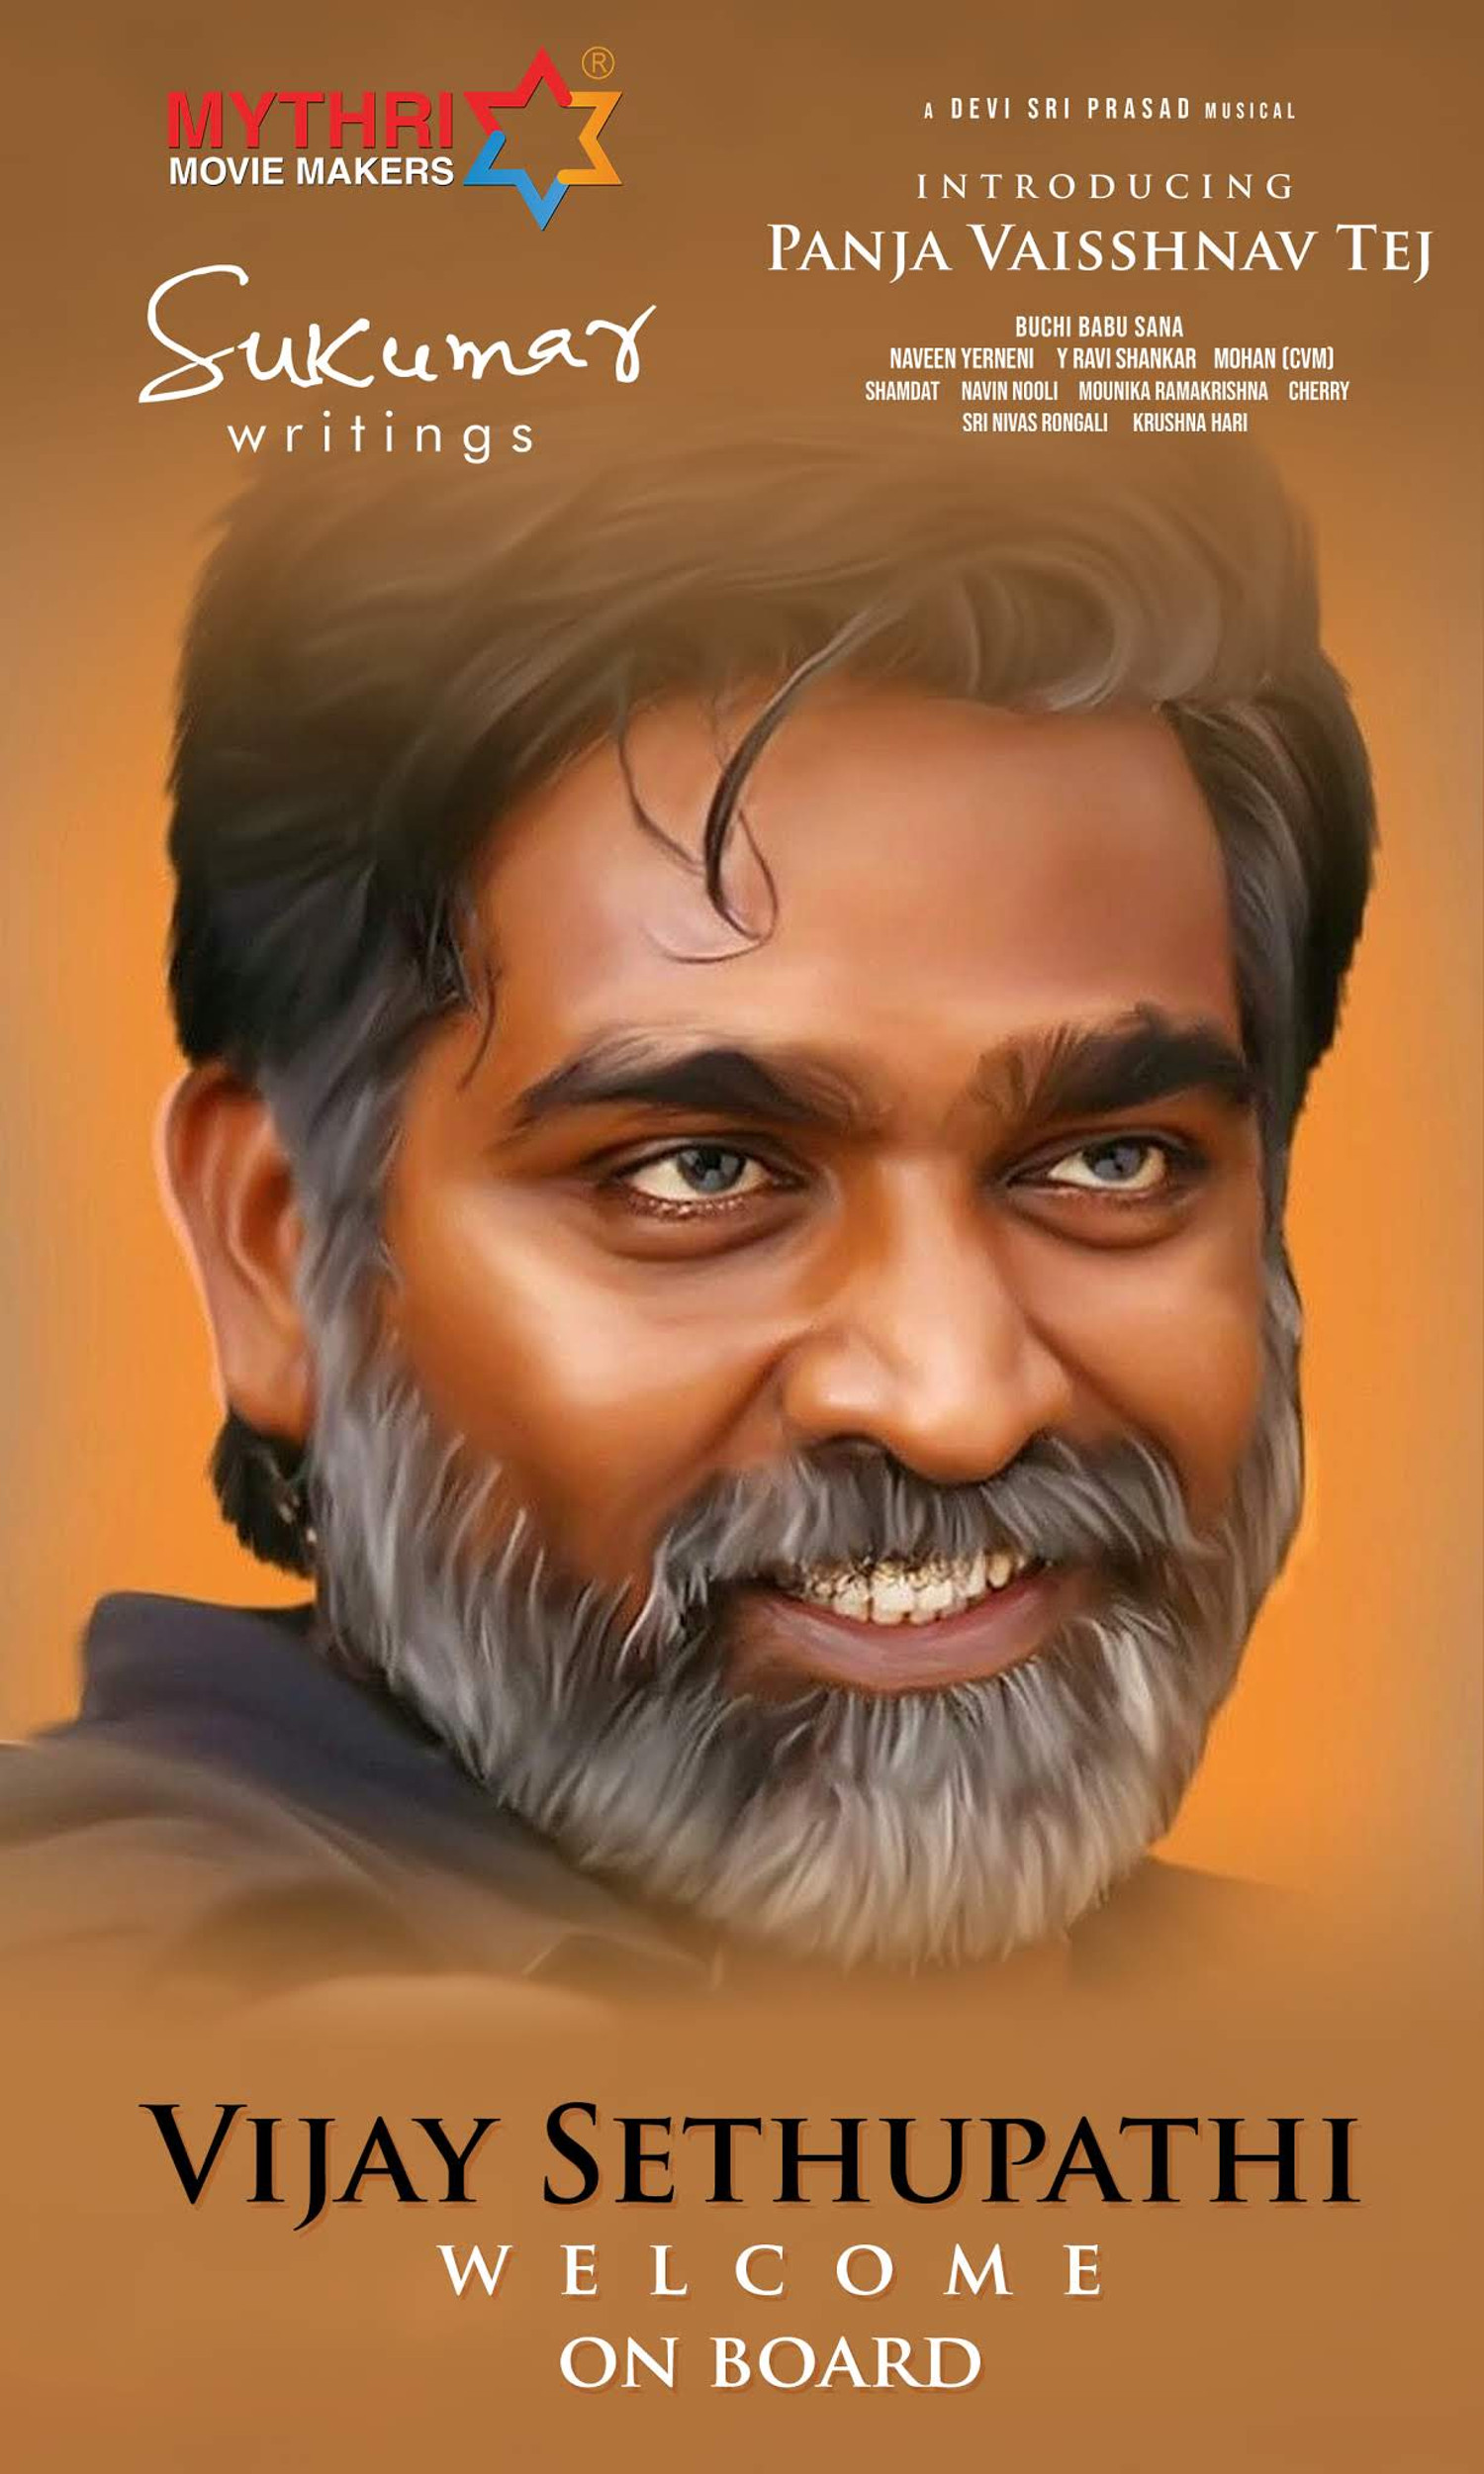 Actor Vijay Sethupathi in Vaisshnav Tej Movie